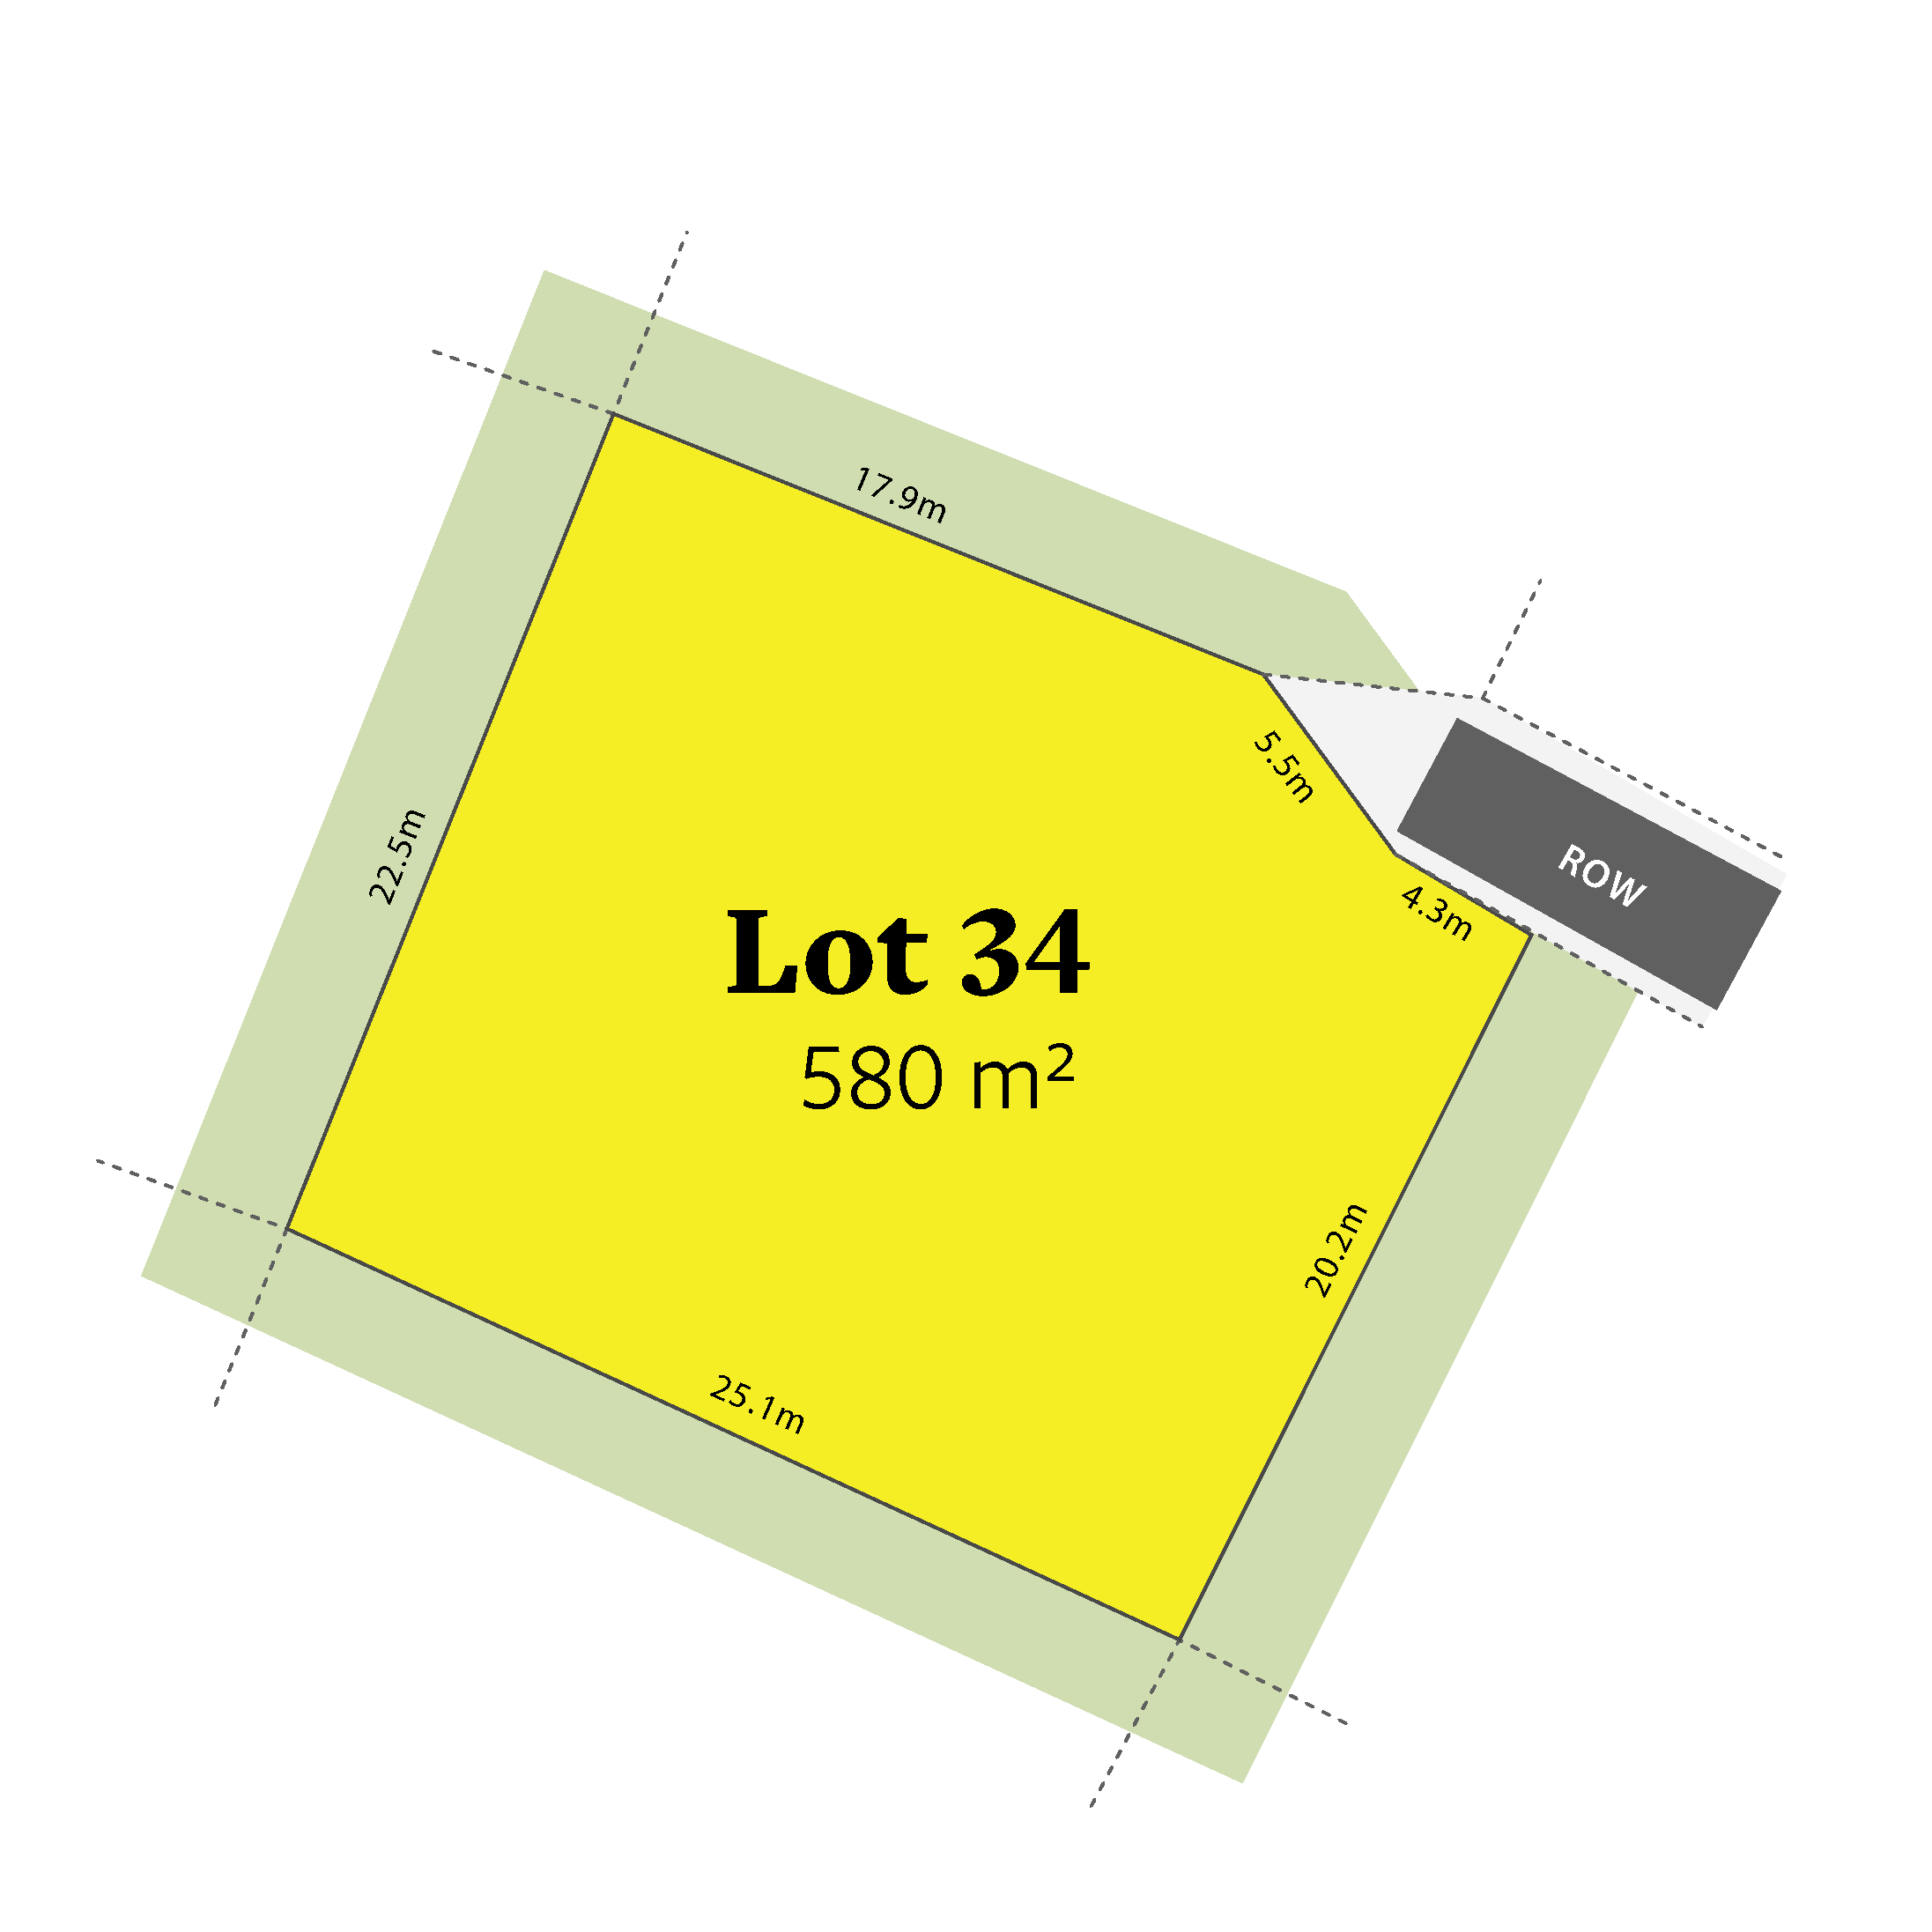 Image of Lot 34